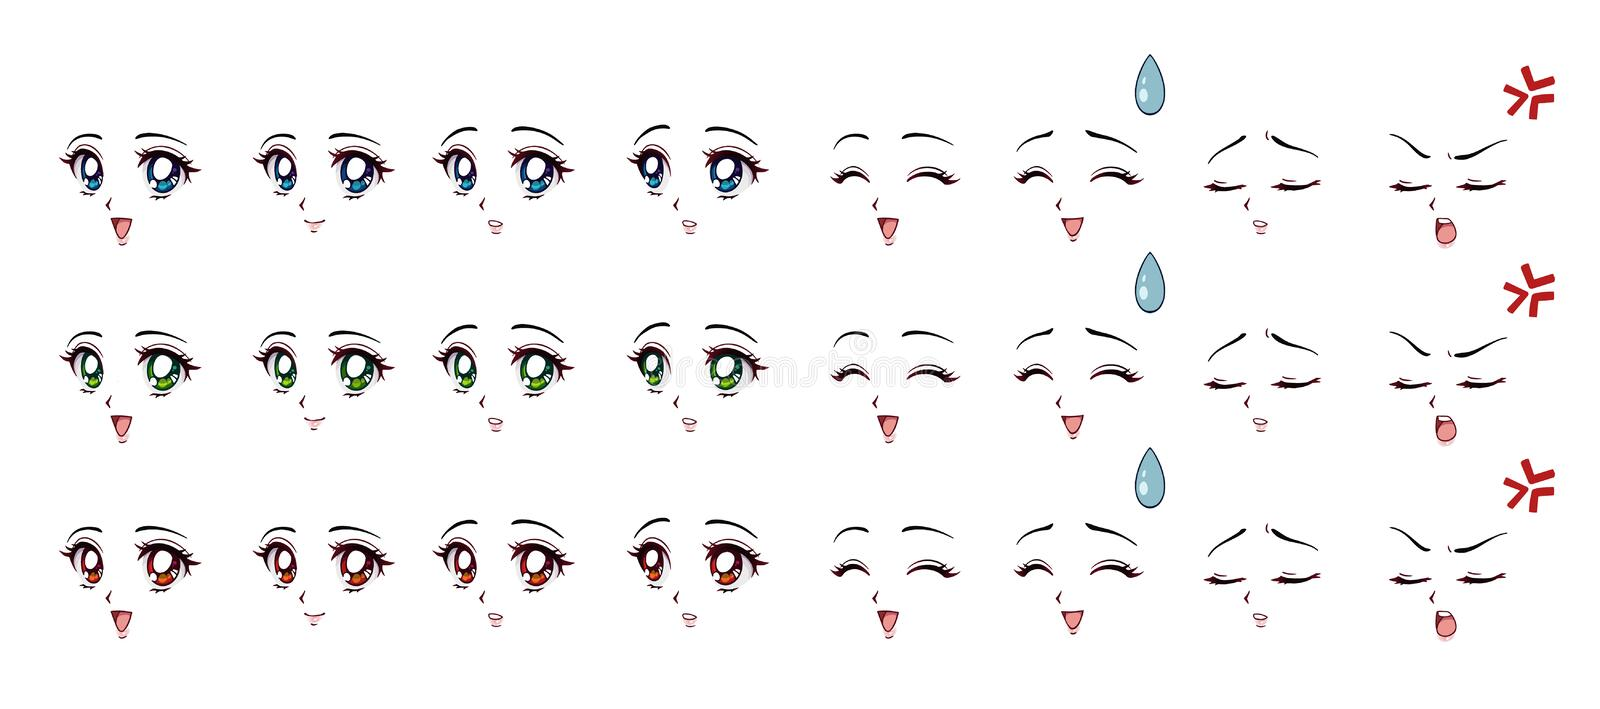 Set of cartoon anime style expressions. Different eyes, mouth, eyebrows. Three different colors red, green, blue. Hand drawn vector illustration isolated on vector illustration